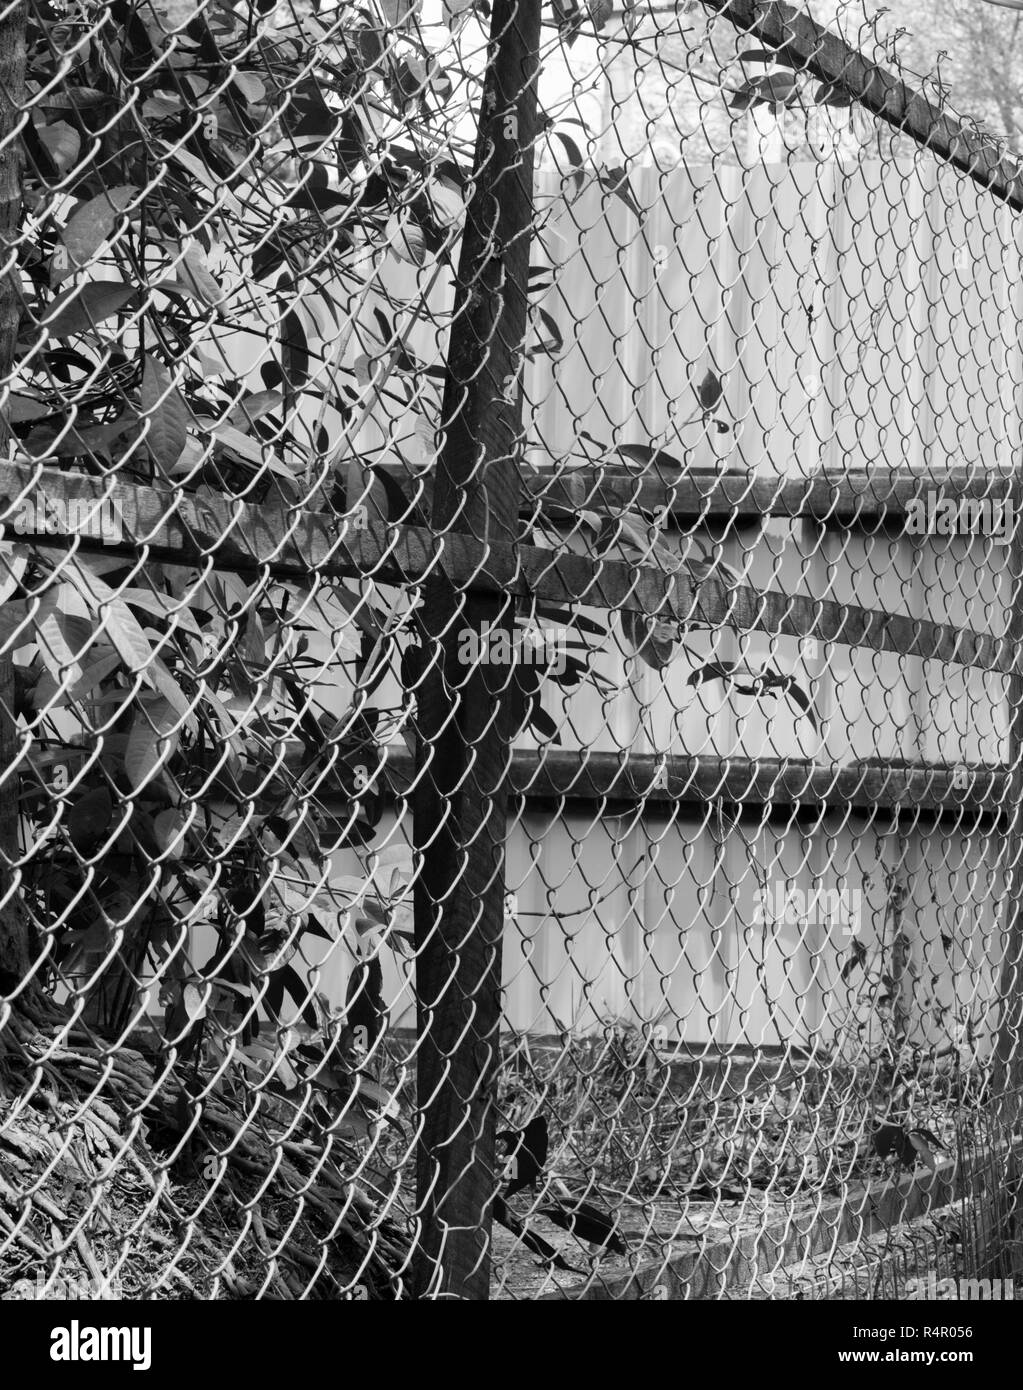 BLACK AND WHITE PHOTO OF CHAIN-LINK FENCE - Stock Image